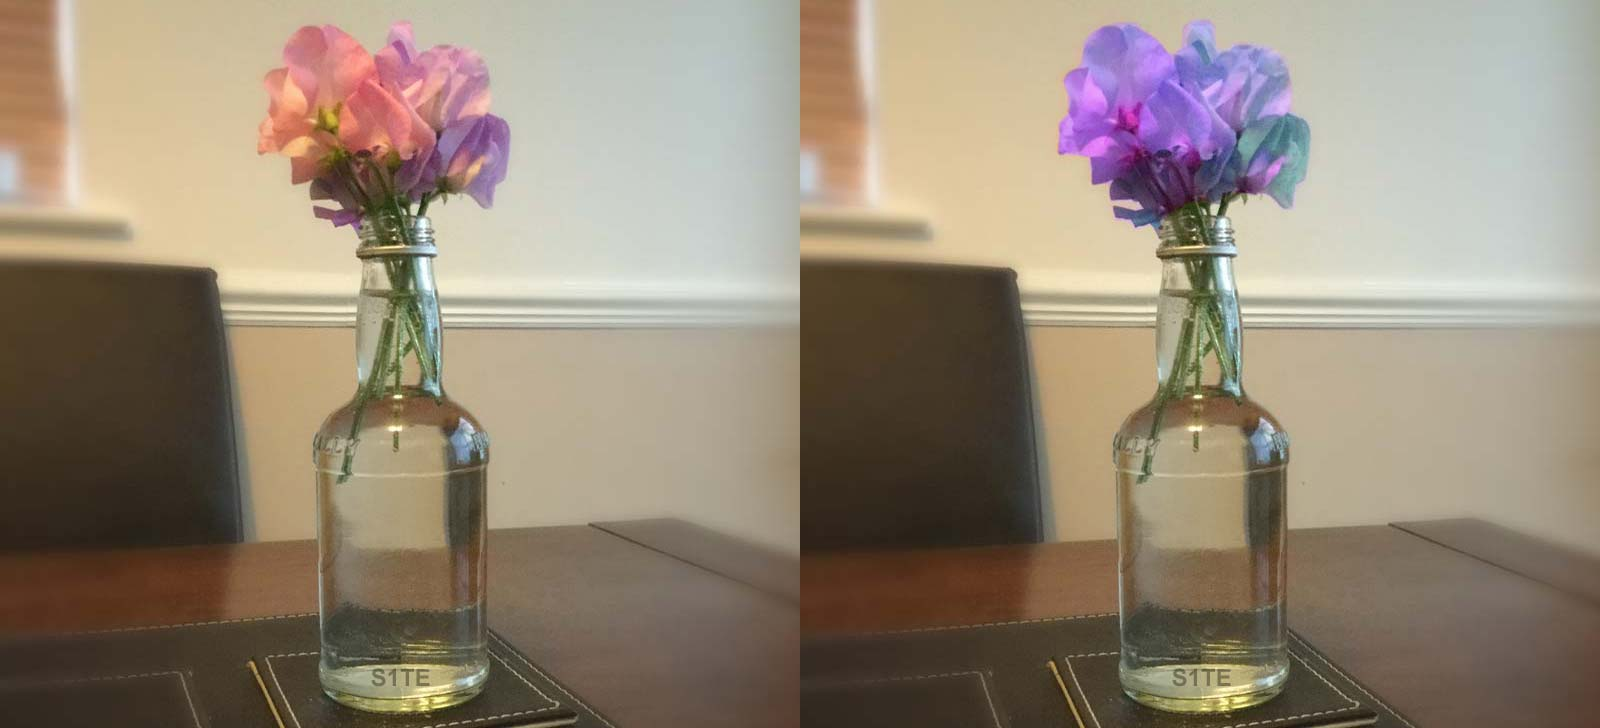 S1TE.net / Tutorials / Sweet Peas Glass Bottle Table Decoration Vase